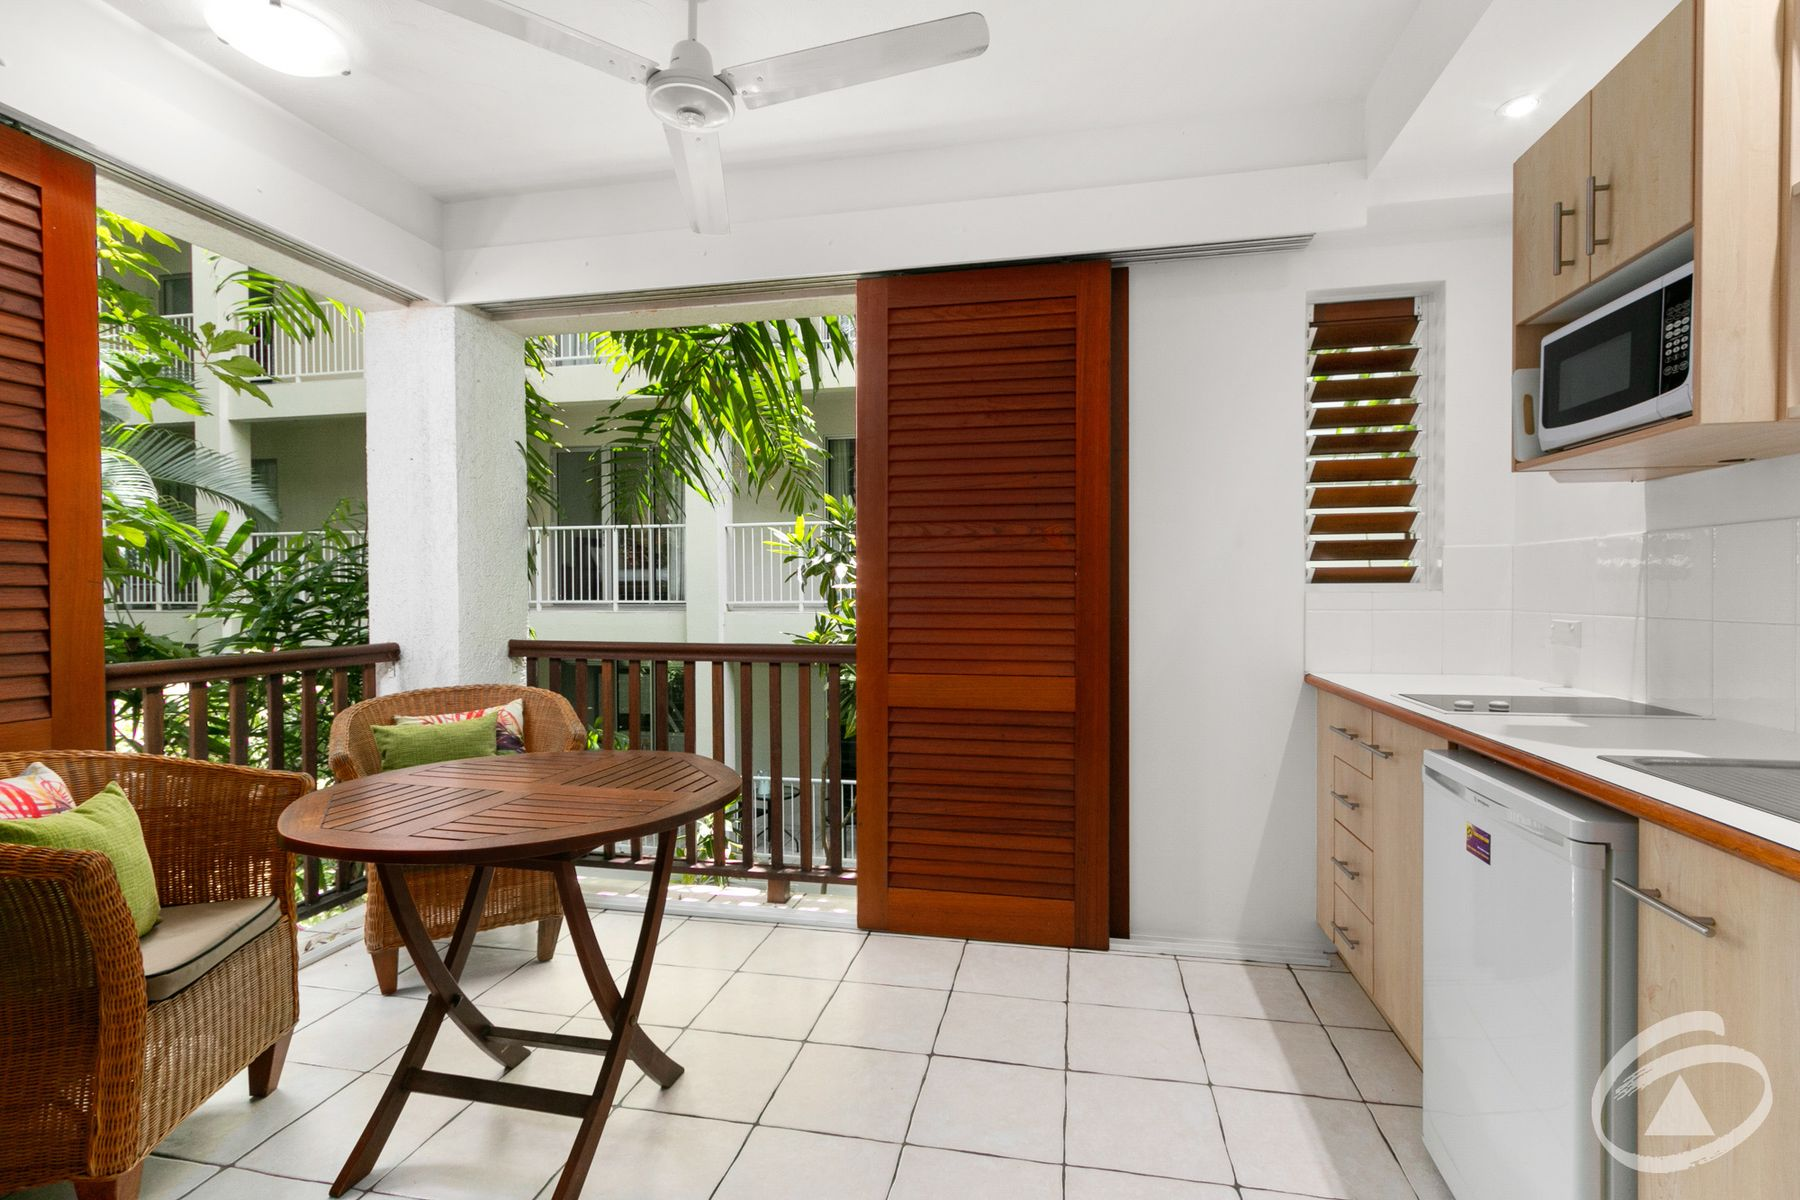 33/10-14 Amphora Street, Palm Cove, QLD 4879